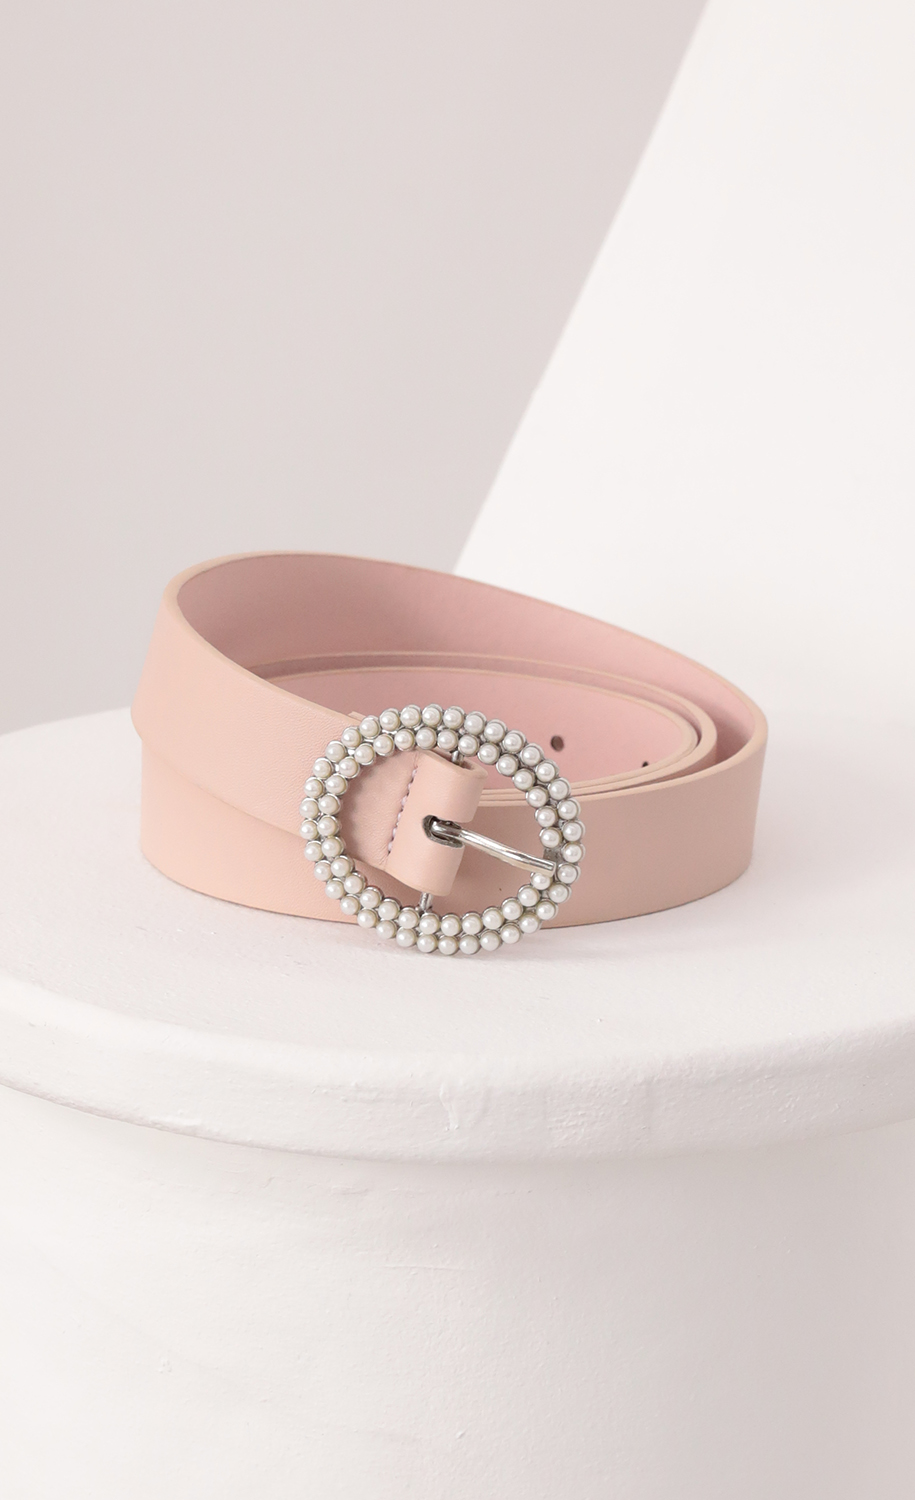 Pearl Buckle Belt in Nude